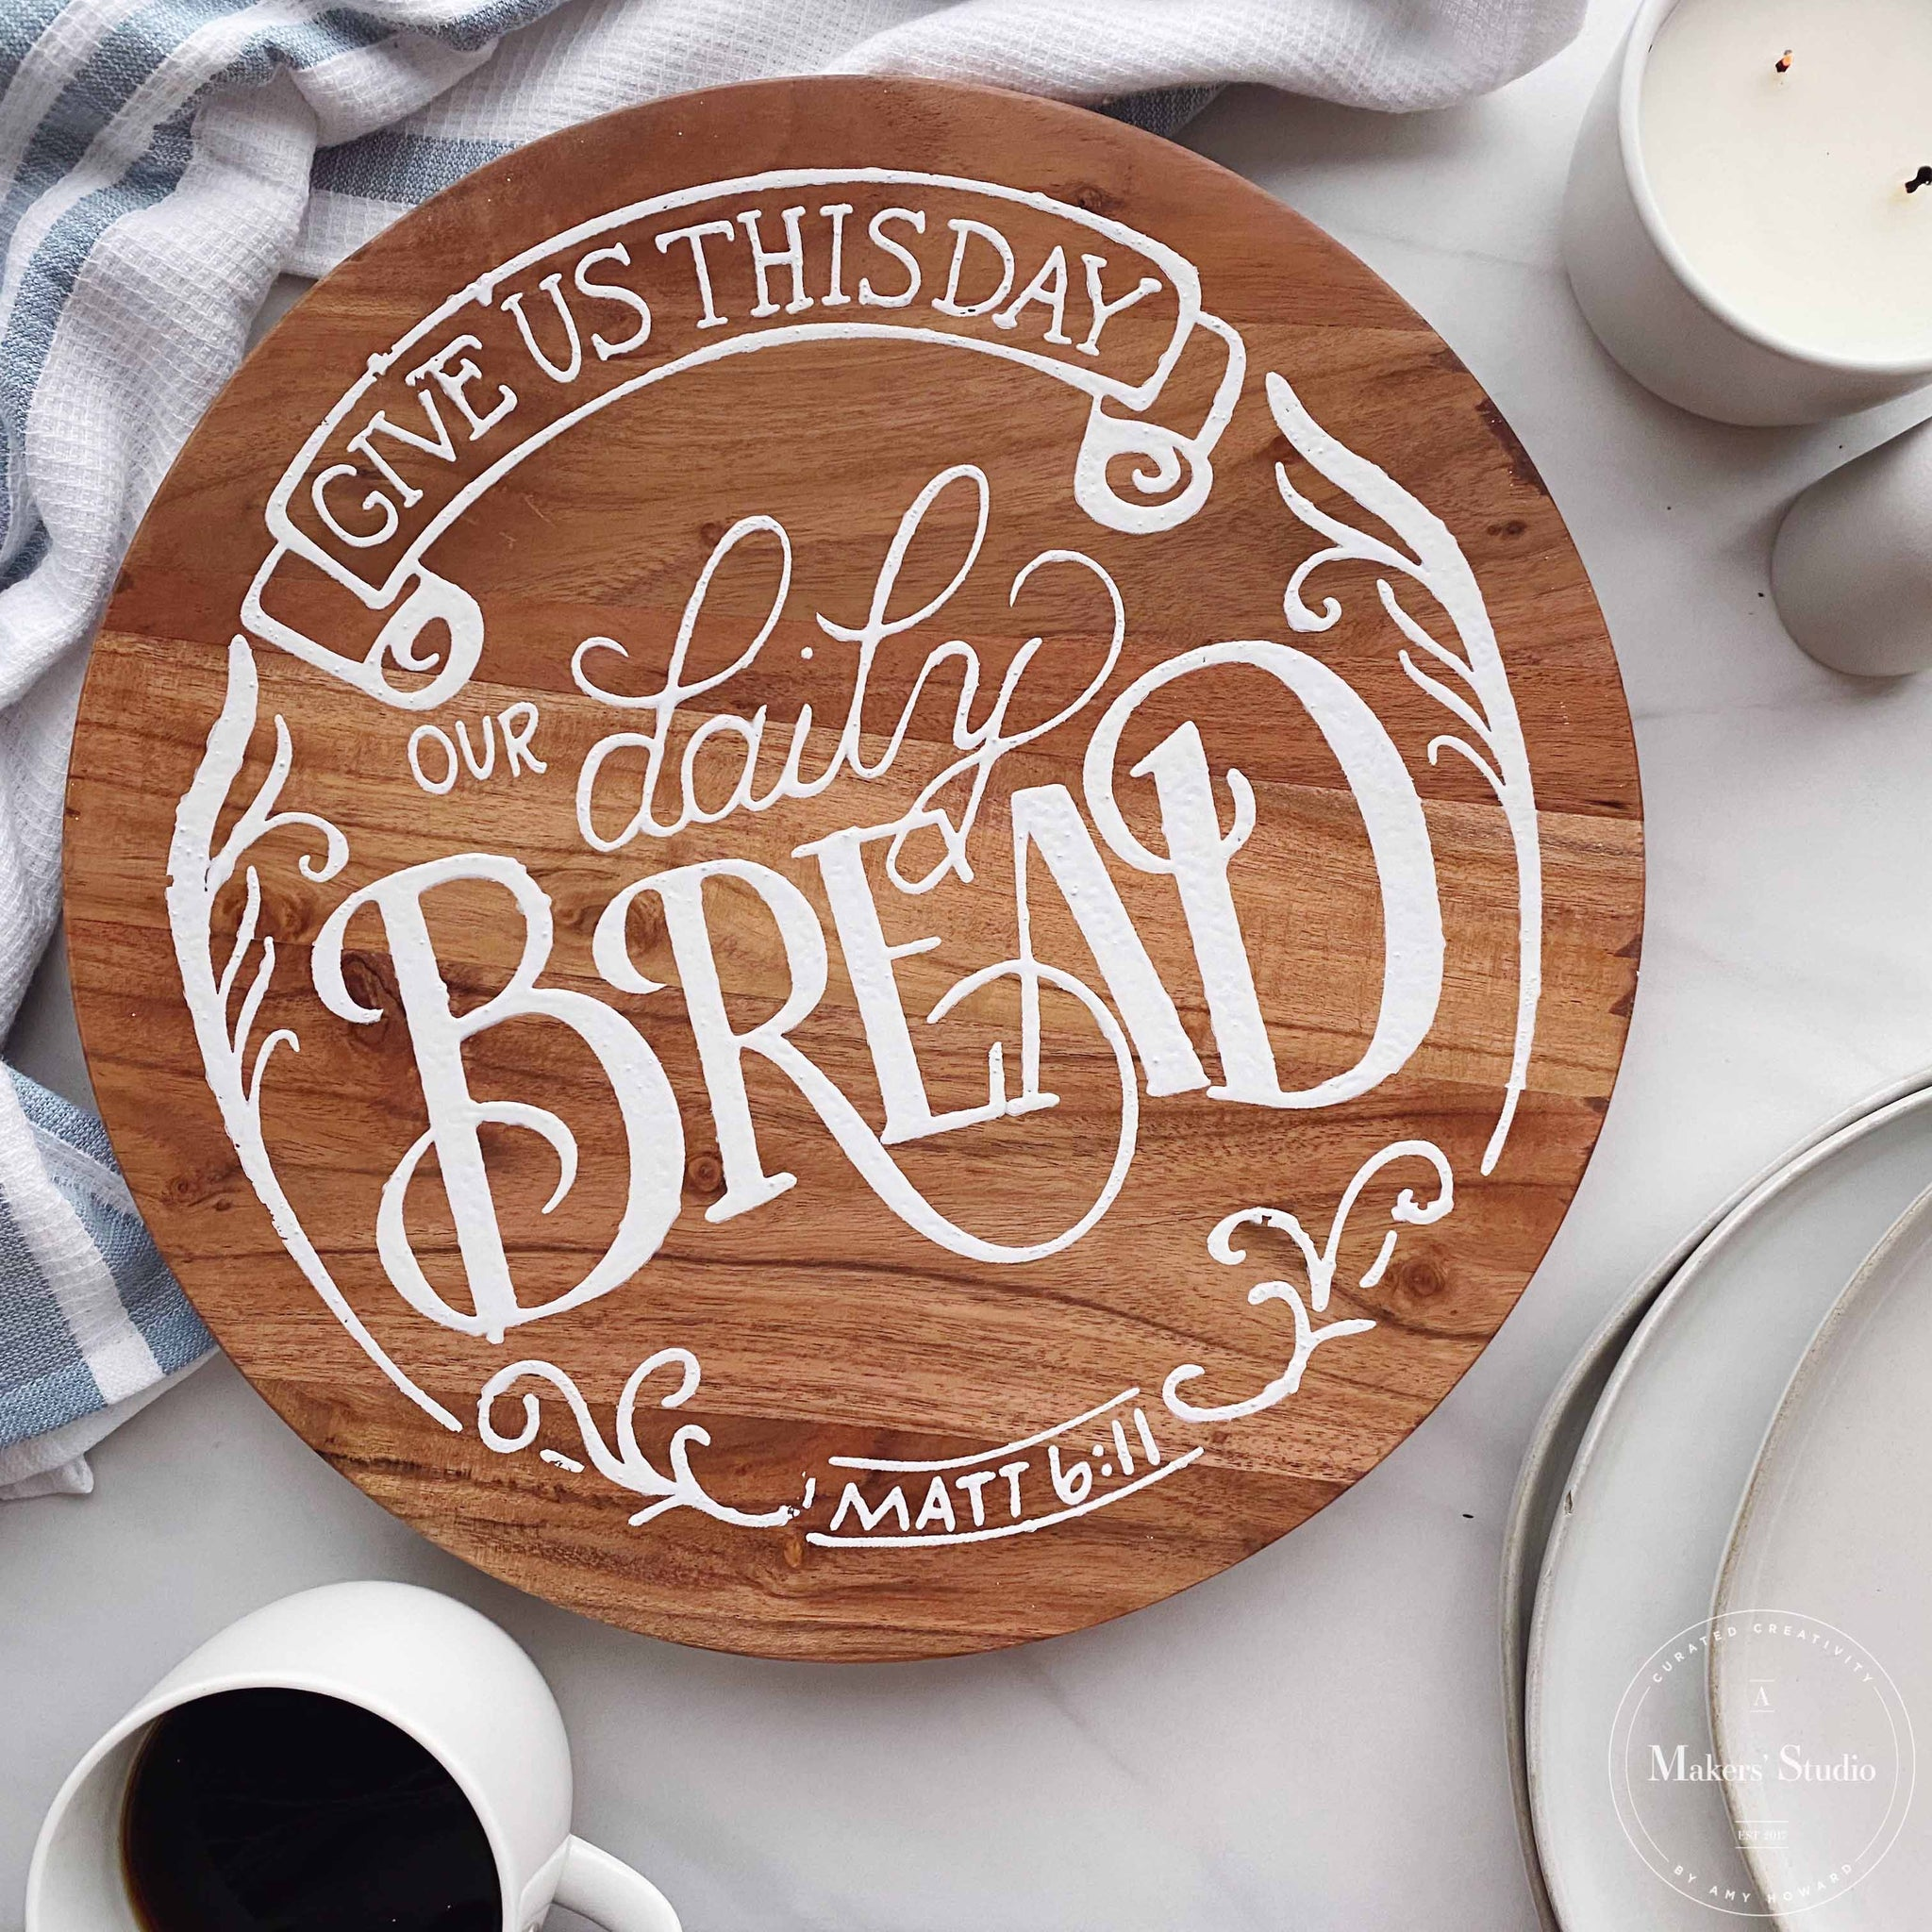 Mesh Stencil - Our Daily Bread 12x12